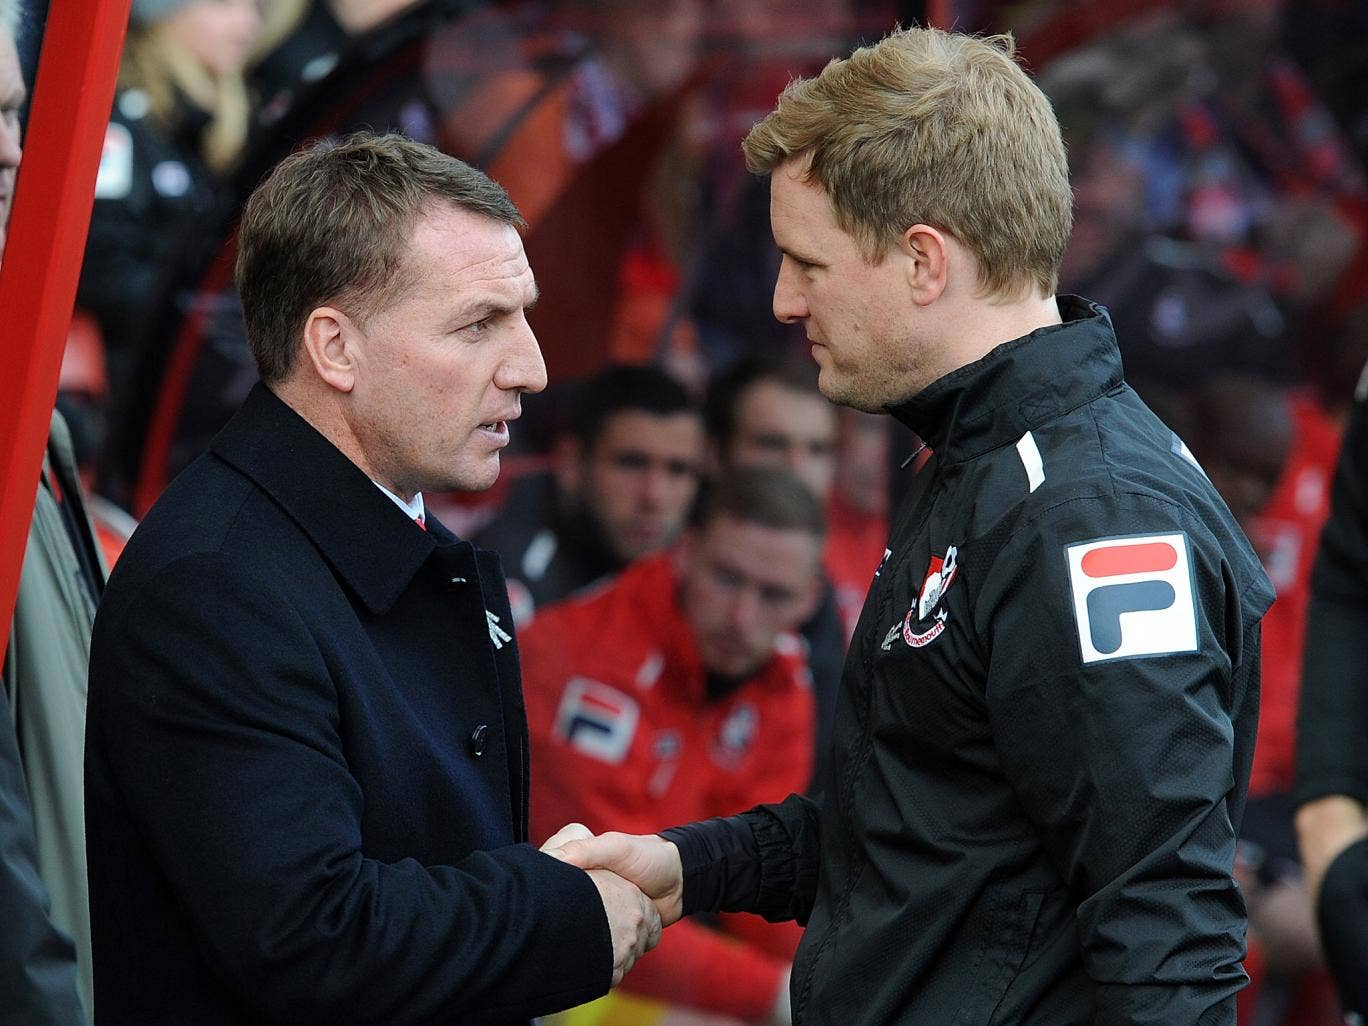 Brendan Rodgers shakes hands with Eddie Howe after Liverpool's 2-0 victory over Bournemouth